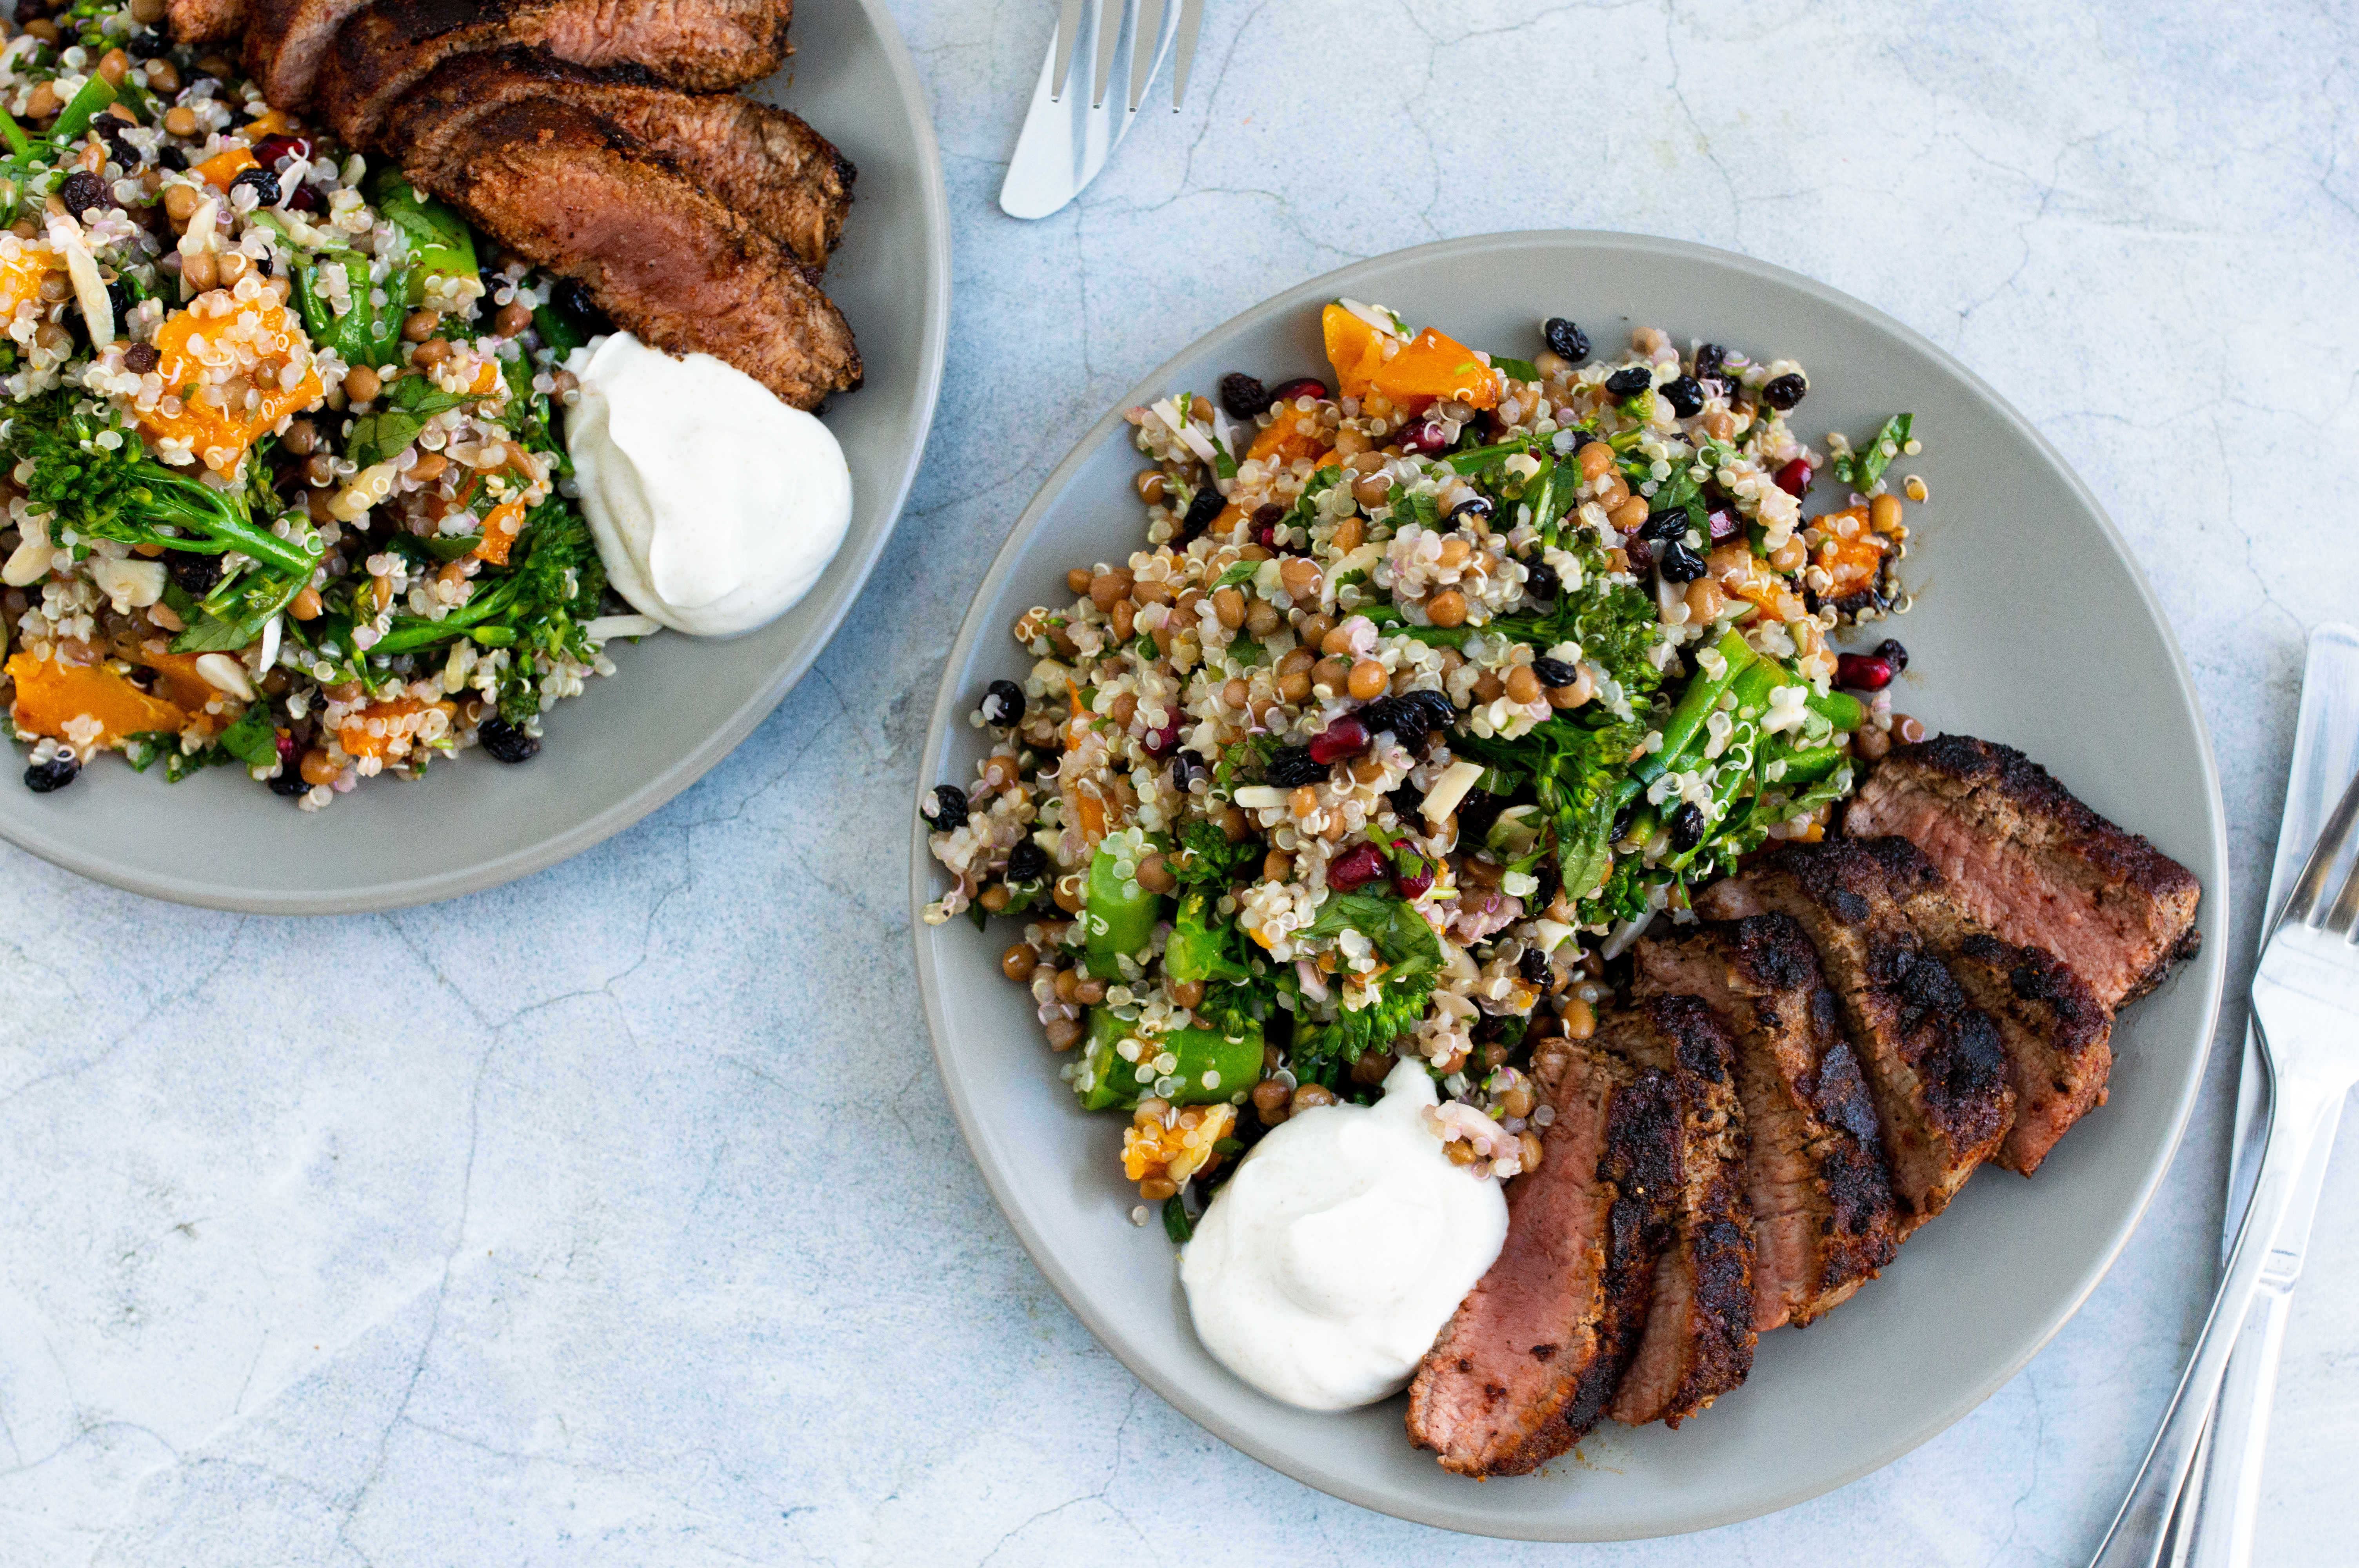 Middle Eastern style lamb with ancient grain salad